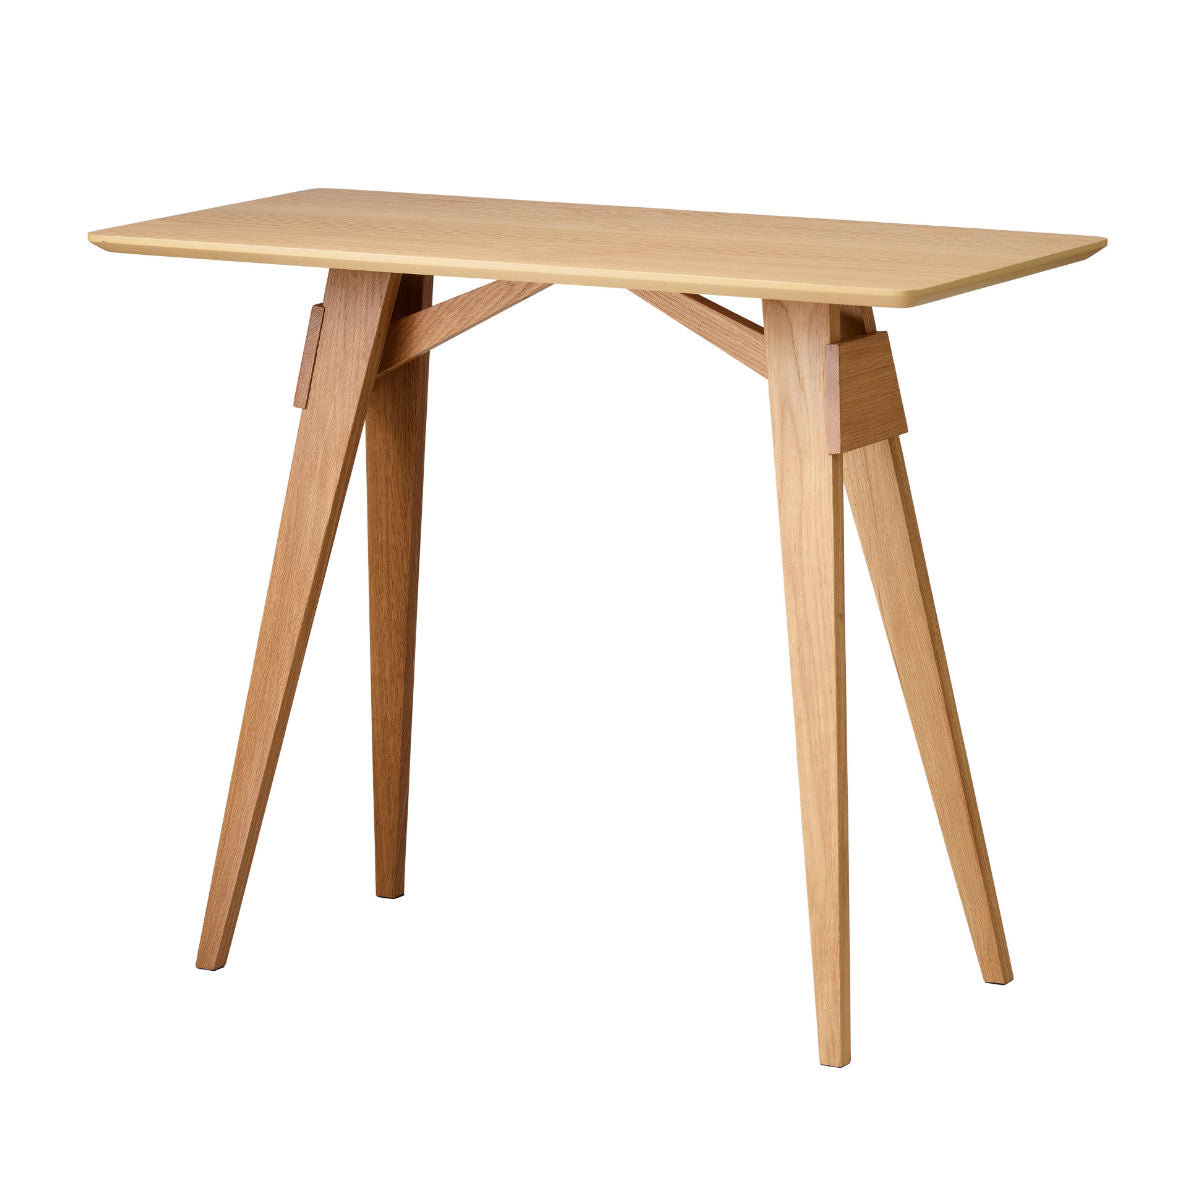 Design House Stockholm Arco side table 72 * 42cm, oak